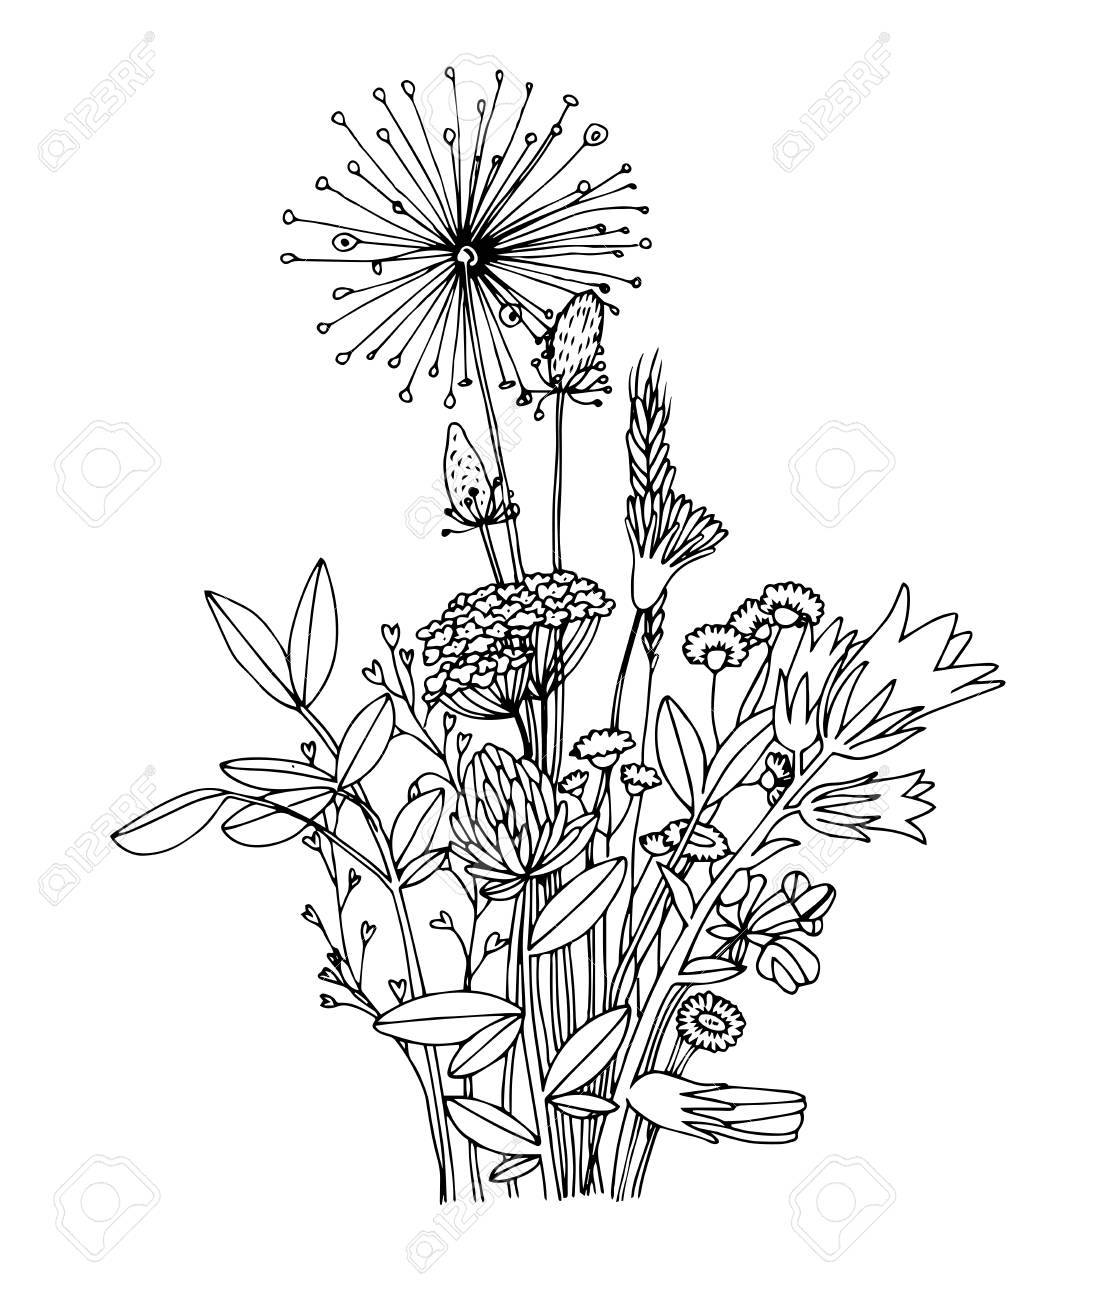 Sketch Of The Wildflowers On A White Background Hand Drawn Illustration Coloring Book